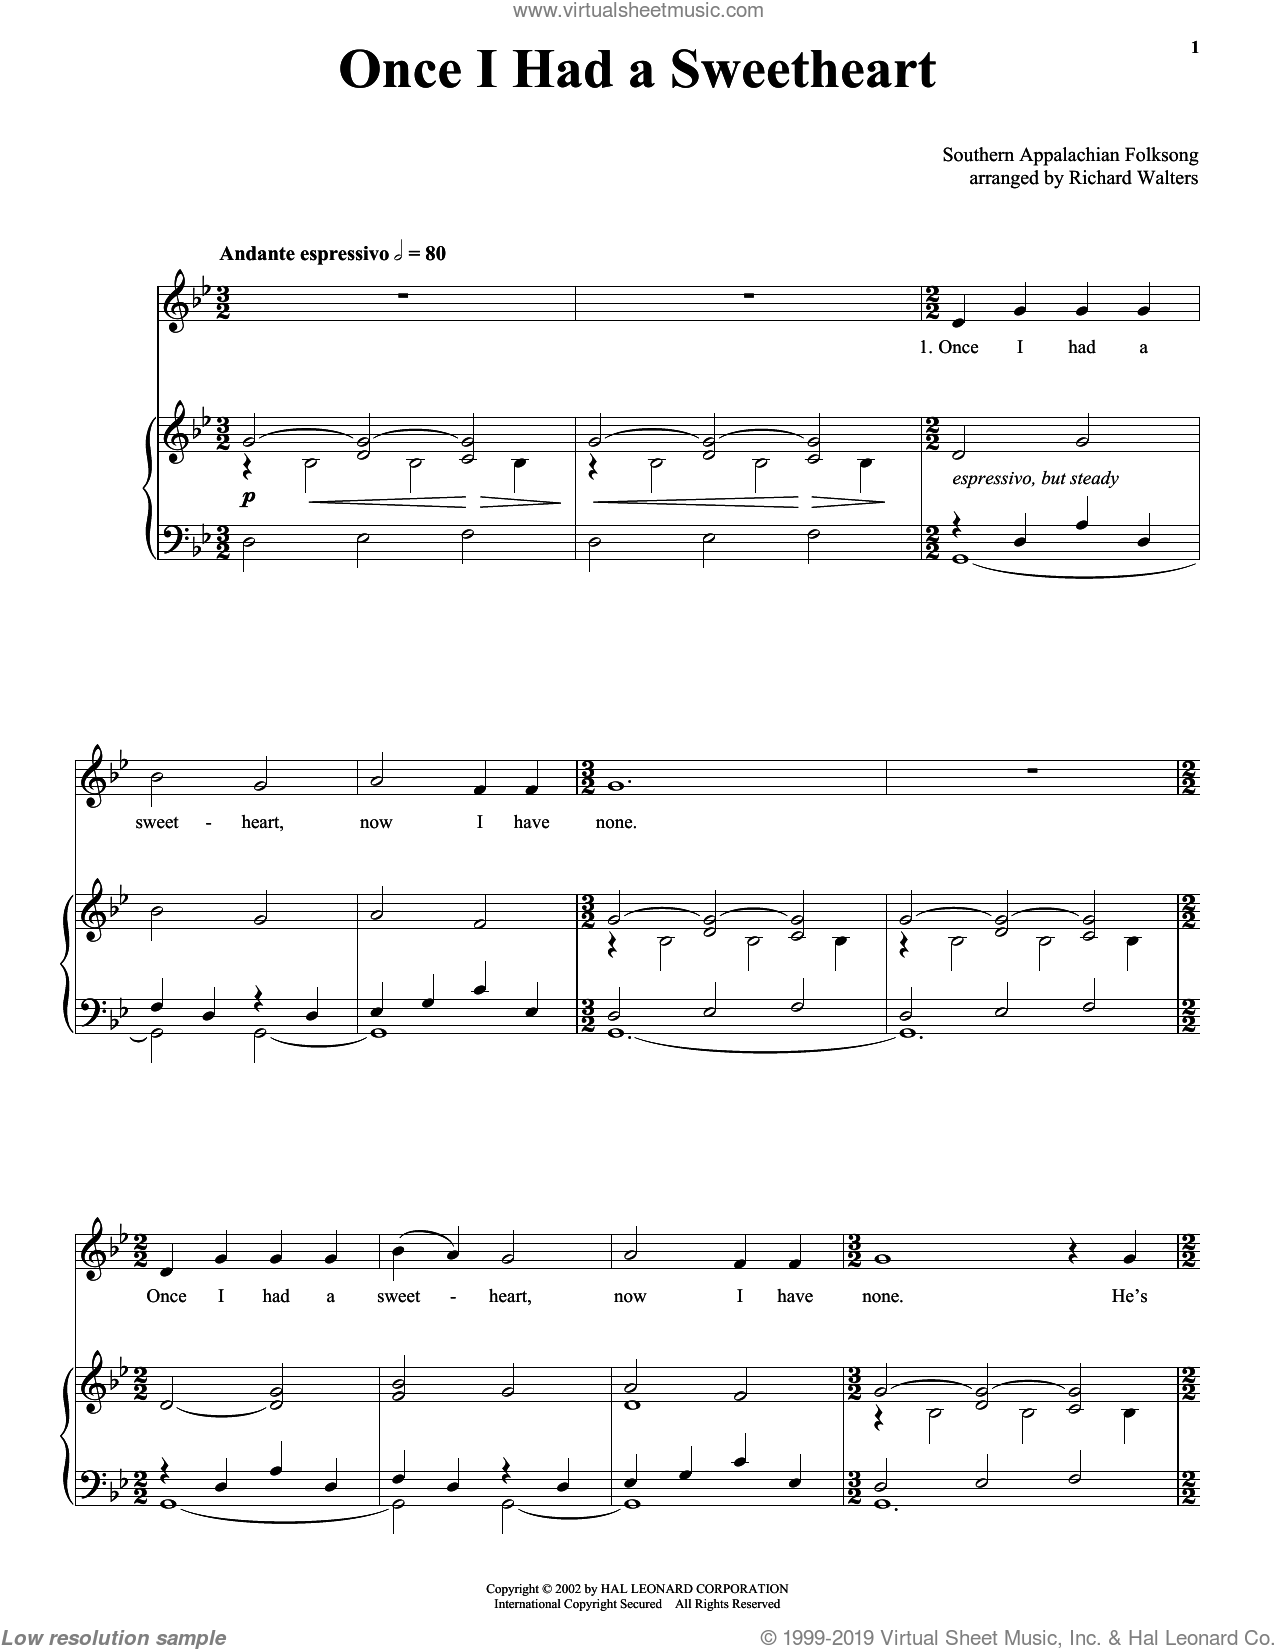 Once I Had A Sweetheart sheet music for voice, piano or guitar